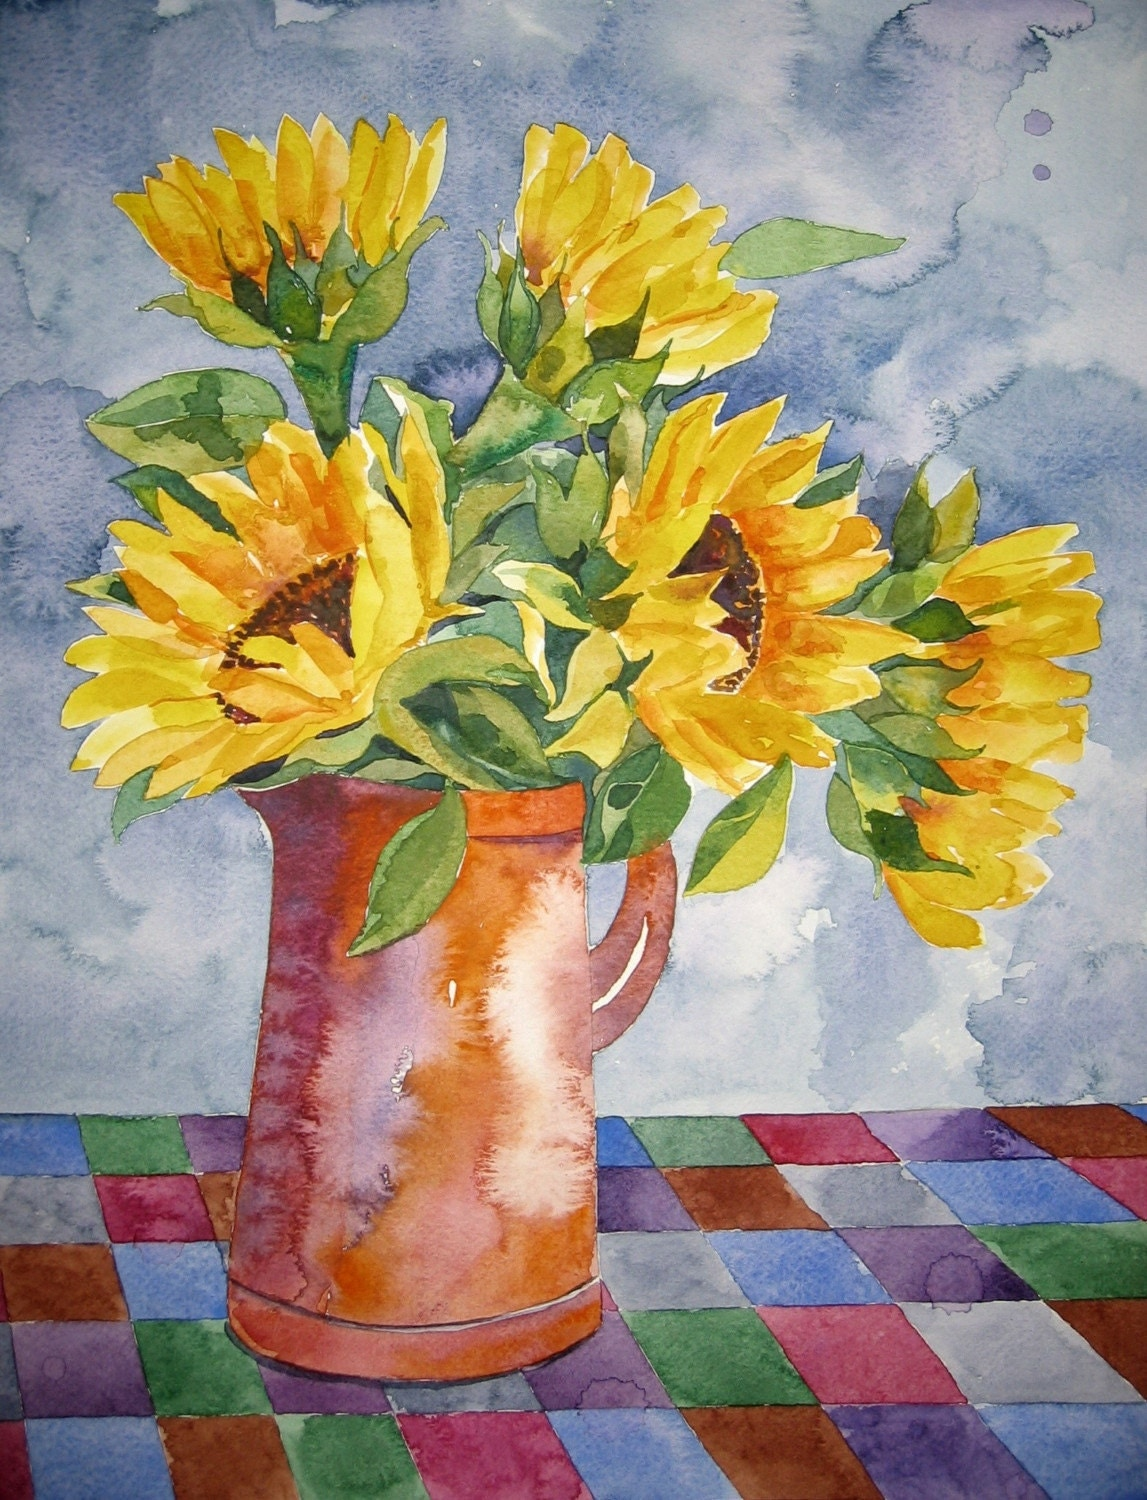 Sunflowers - Giclee Fine Art Print